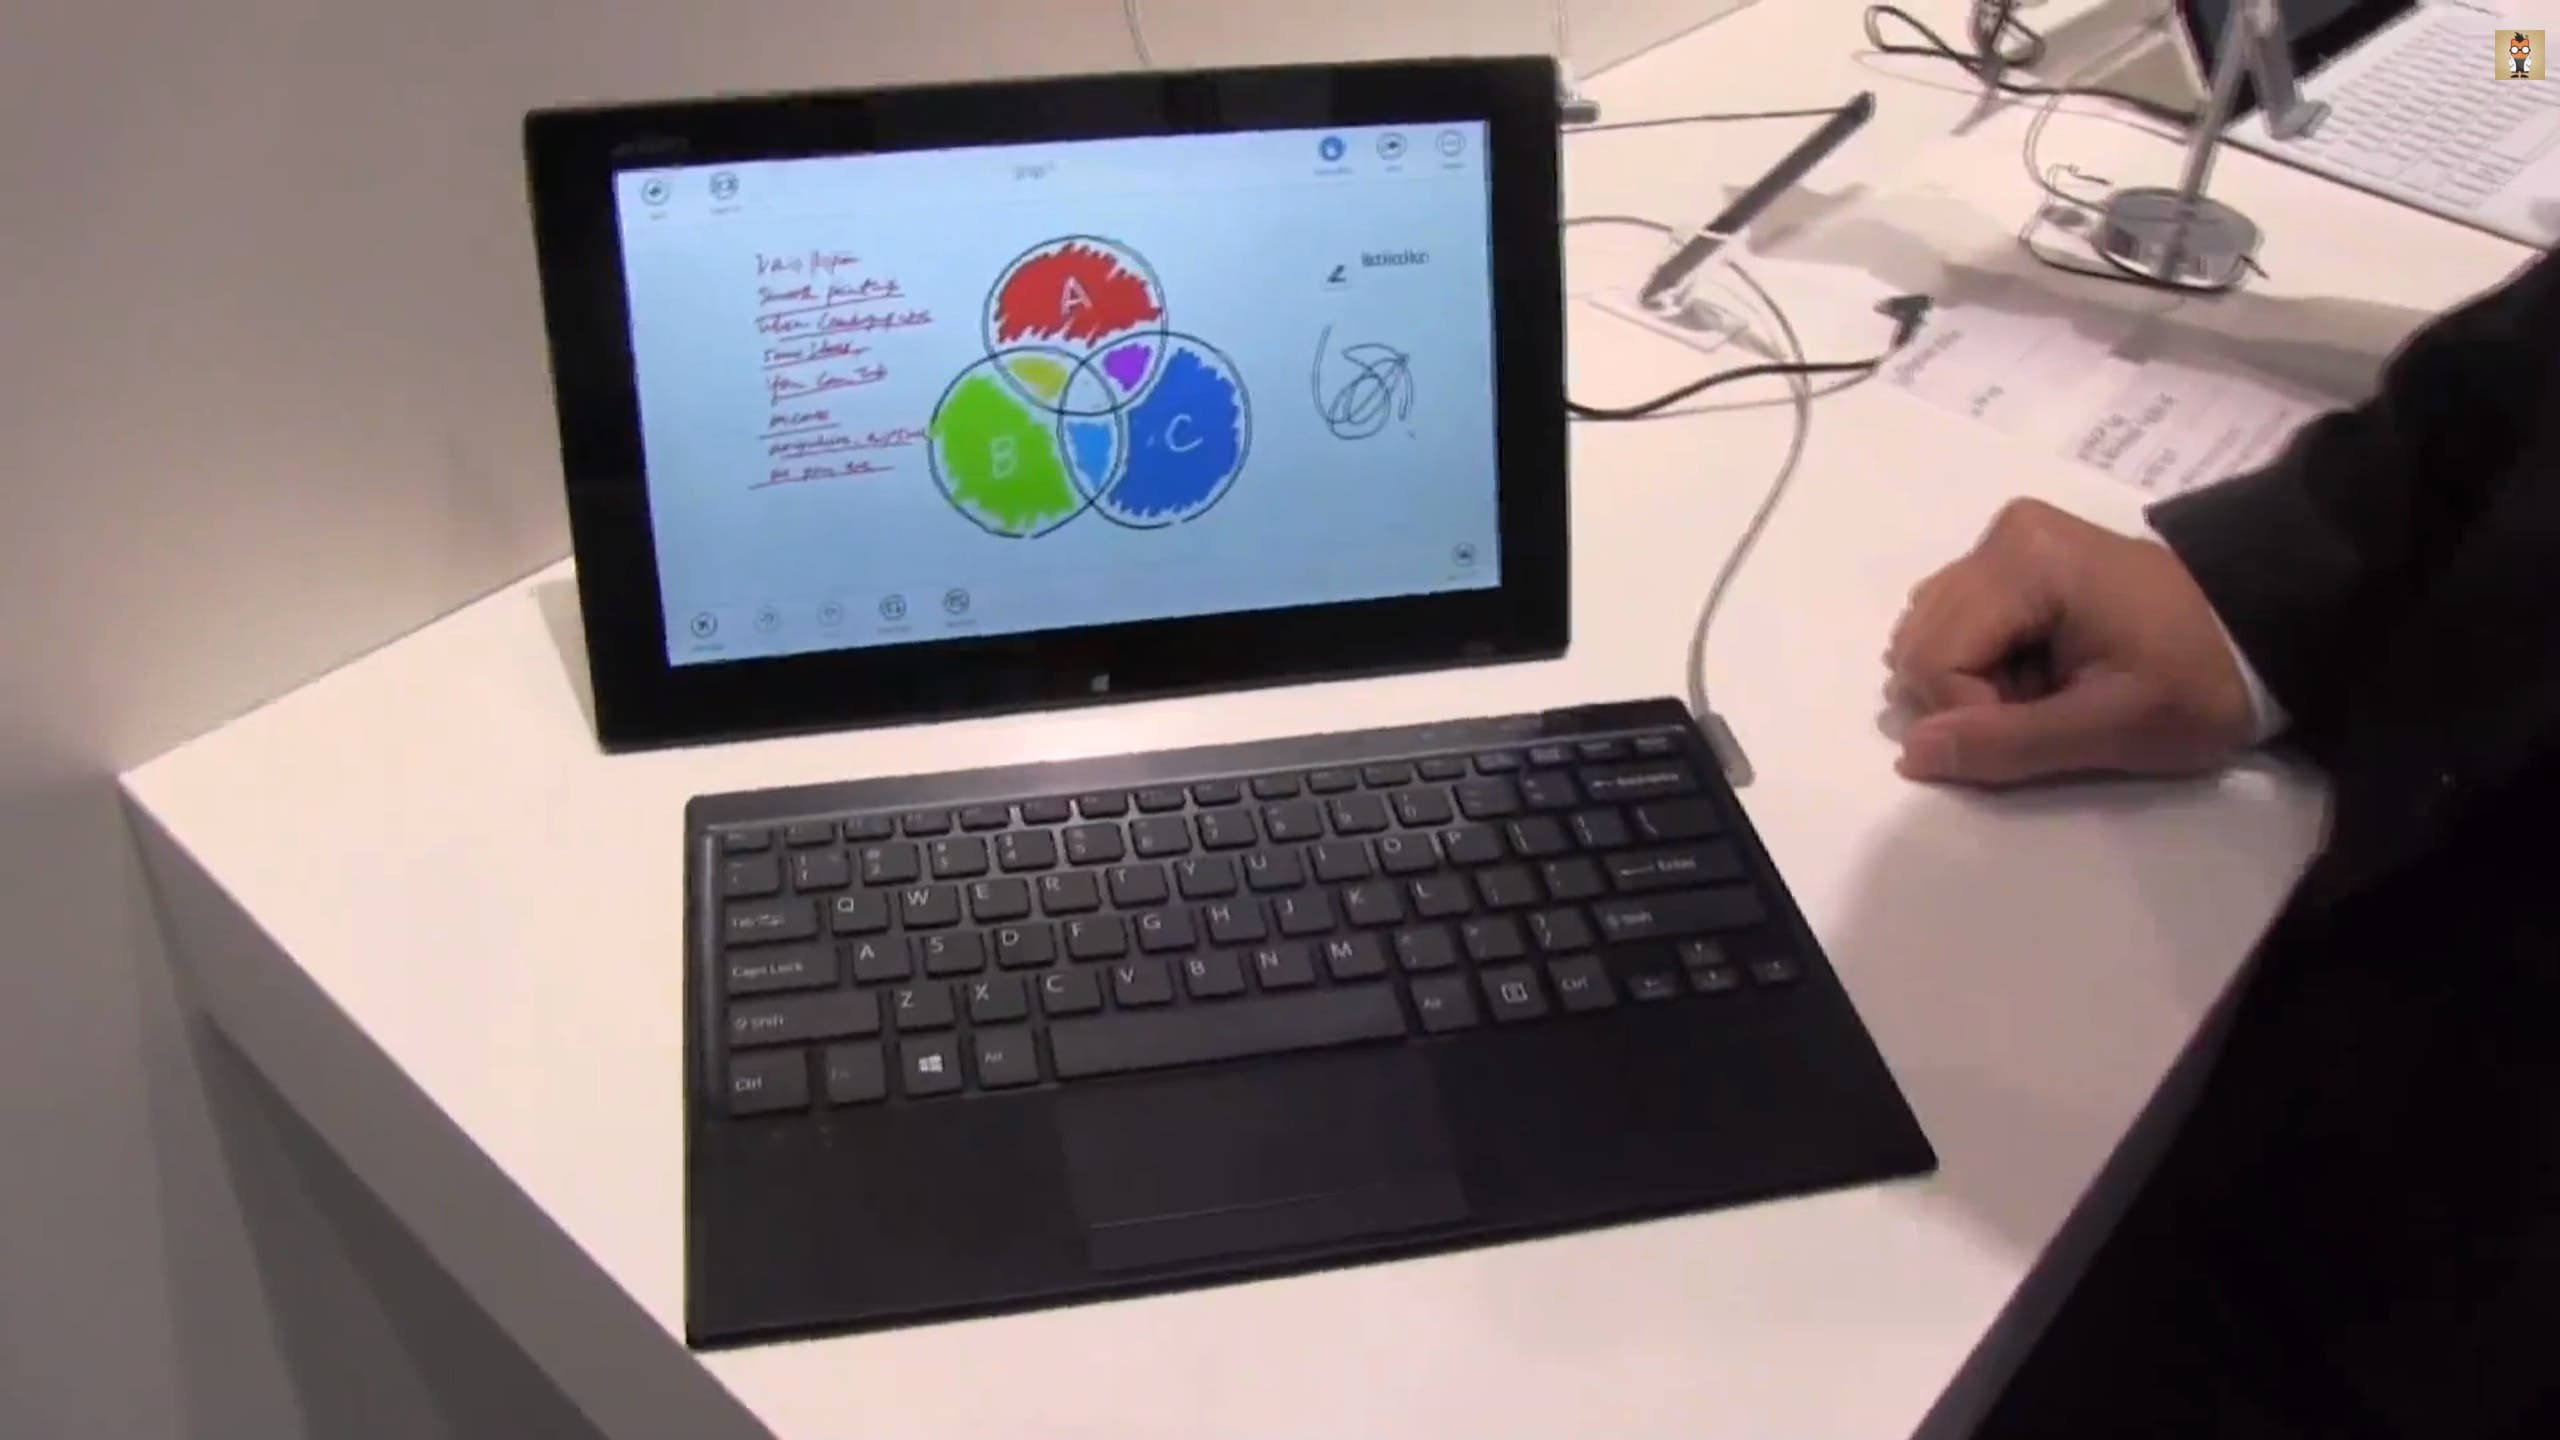 IFA Sony VAIO Tap 11 Windows 8 Tablet with Magnetic Keyboard Hands On